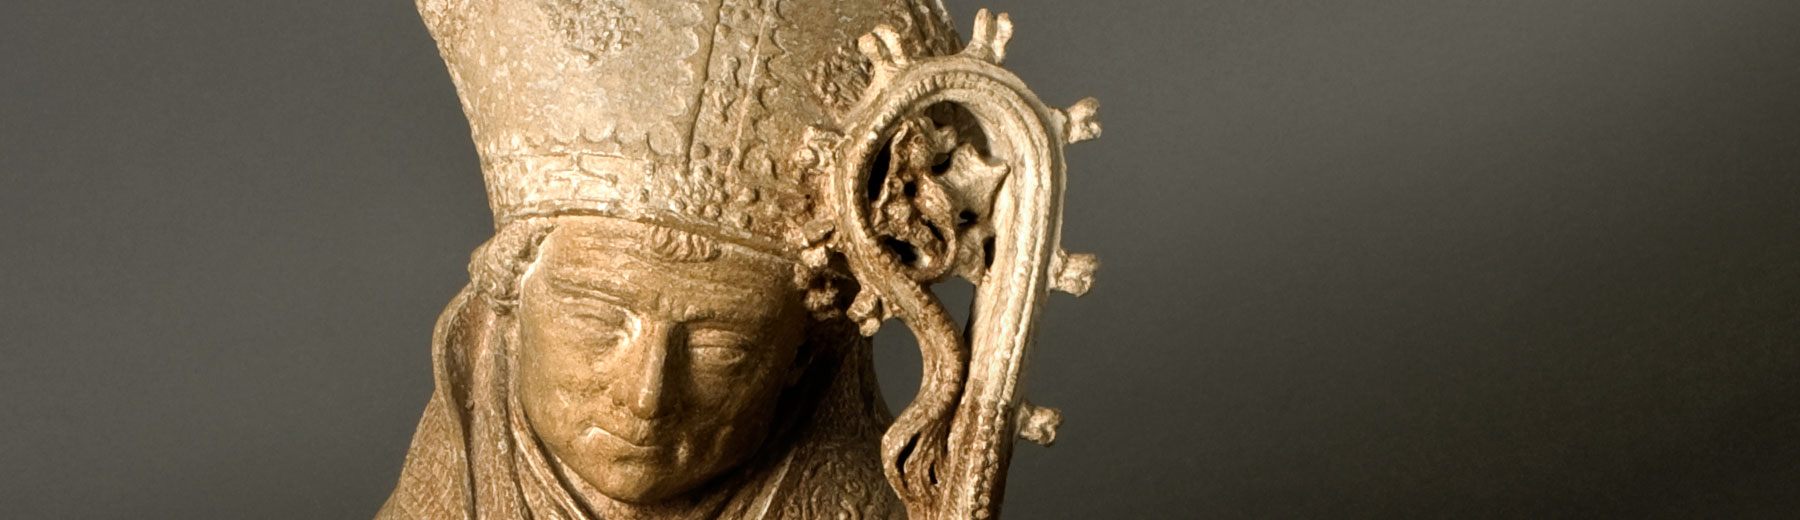 Holy bishop, avesnes stone, Brabant, ca. 1500 (copyright: M - Museum Leuven | photography: Paul Laes)